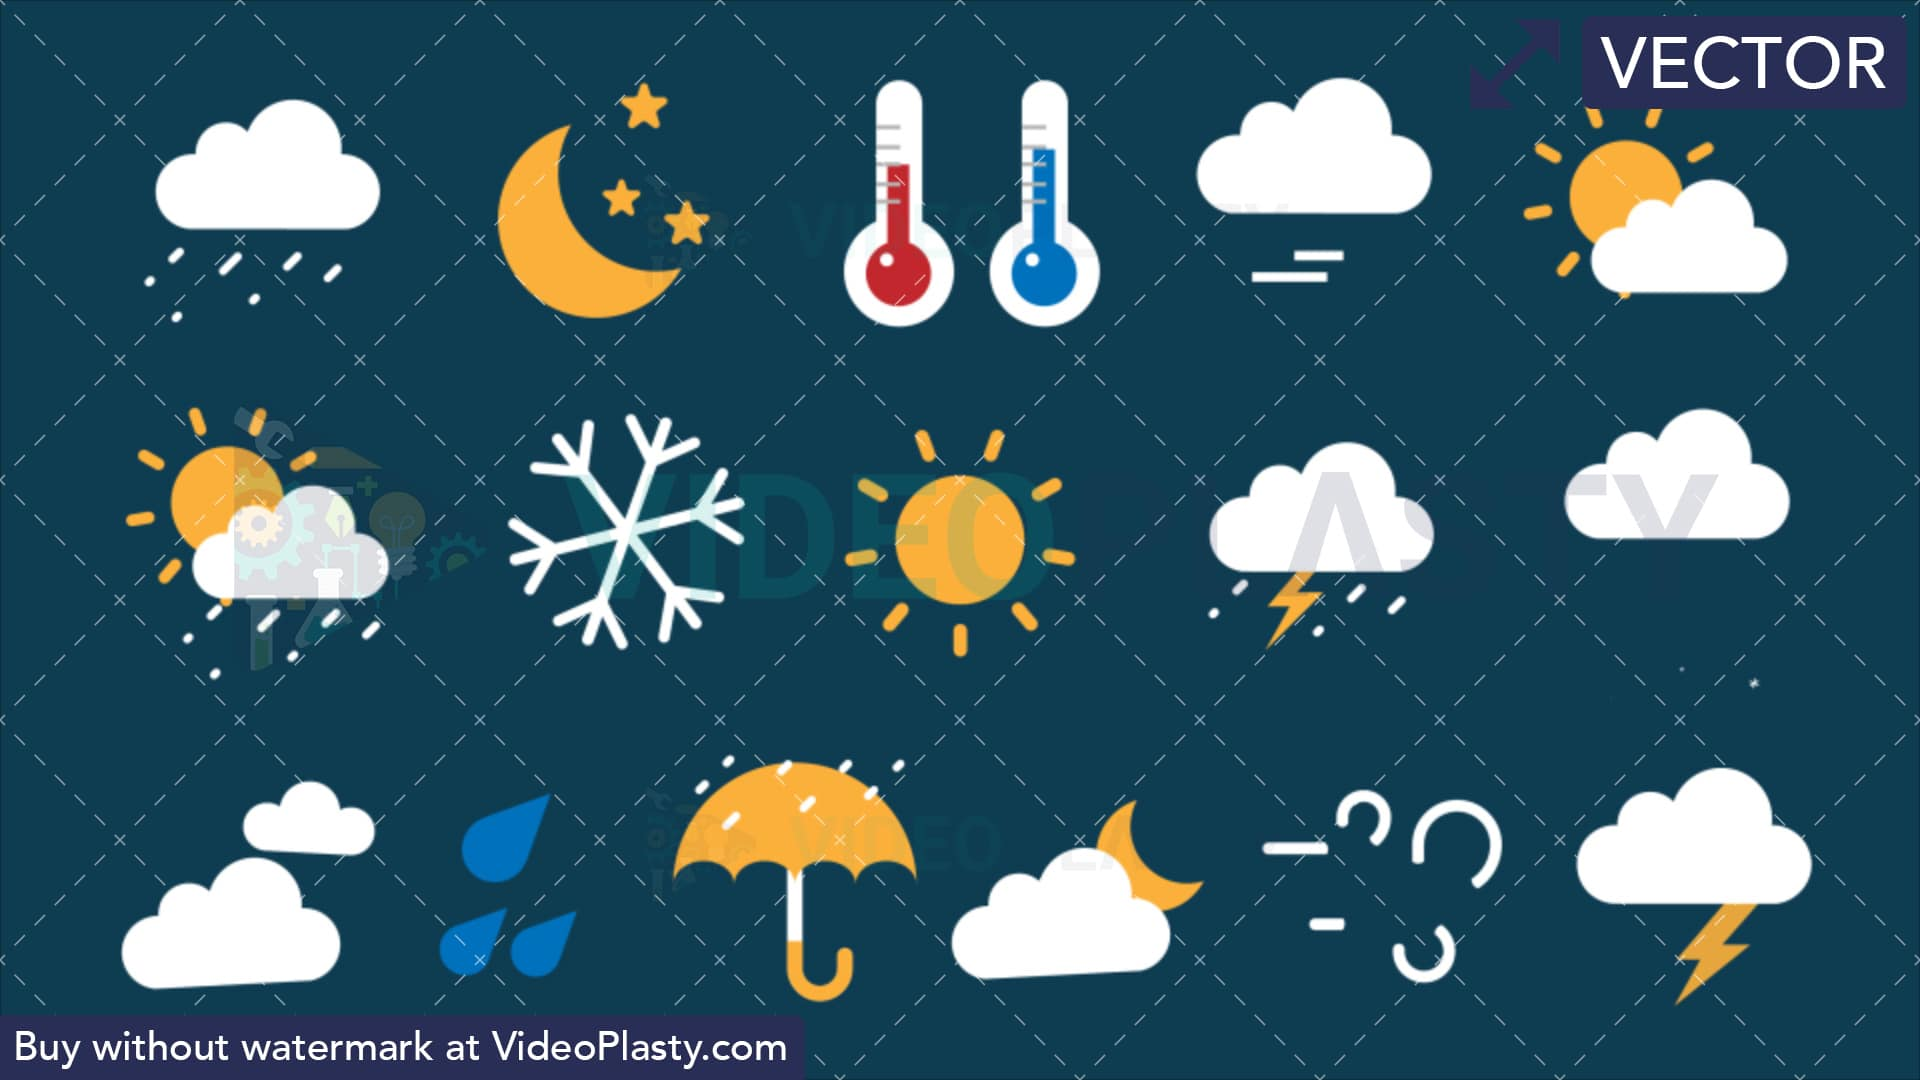 Weather icon pack clipart image royalty free download Weather Bundle - 16 Flat Icons [VECTOR] image royalty free download